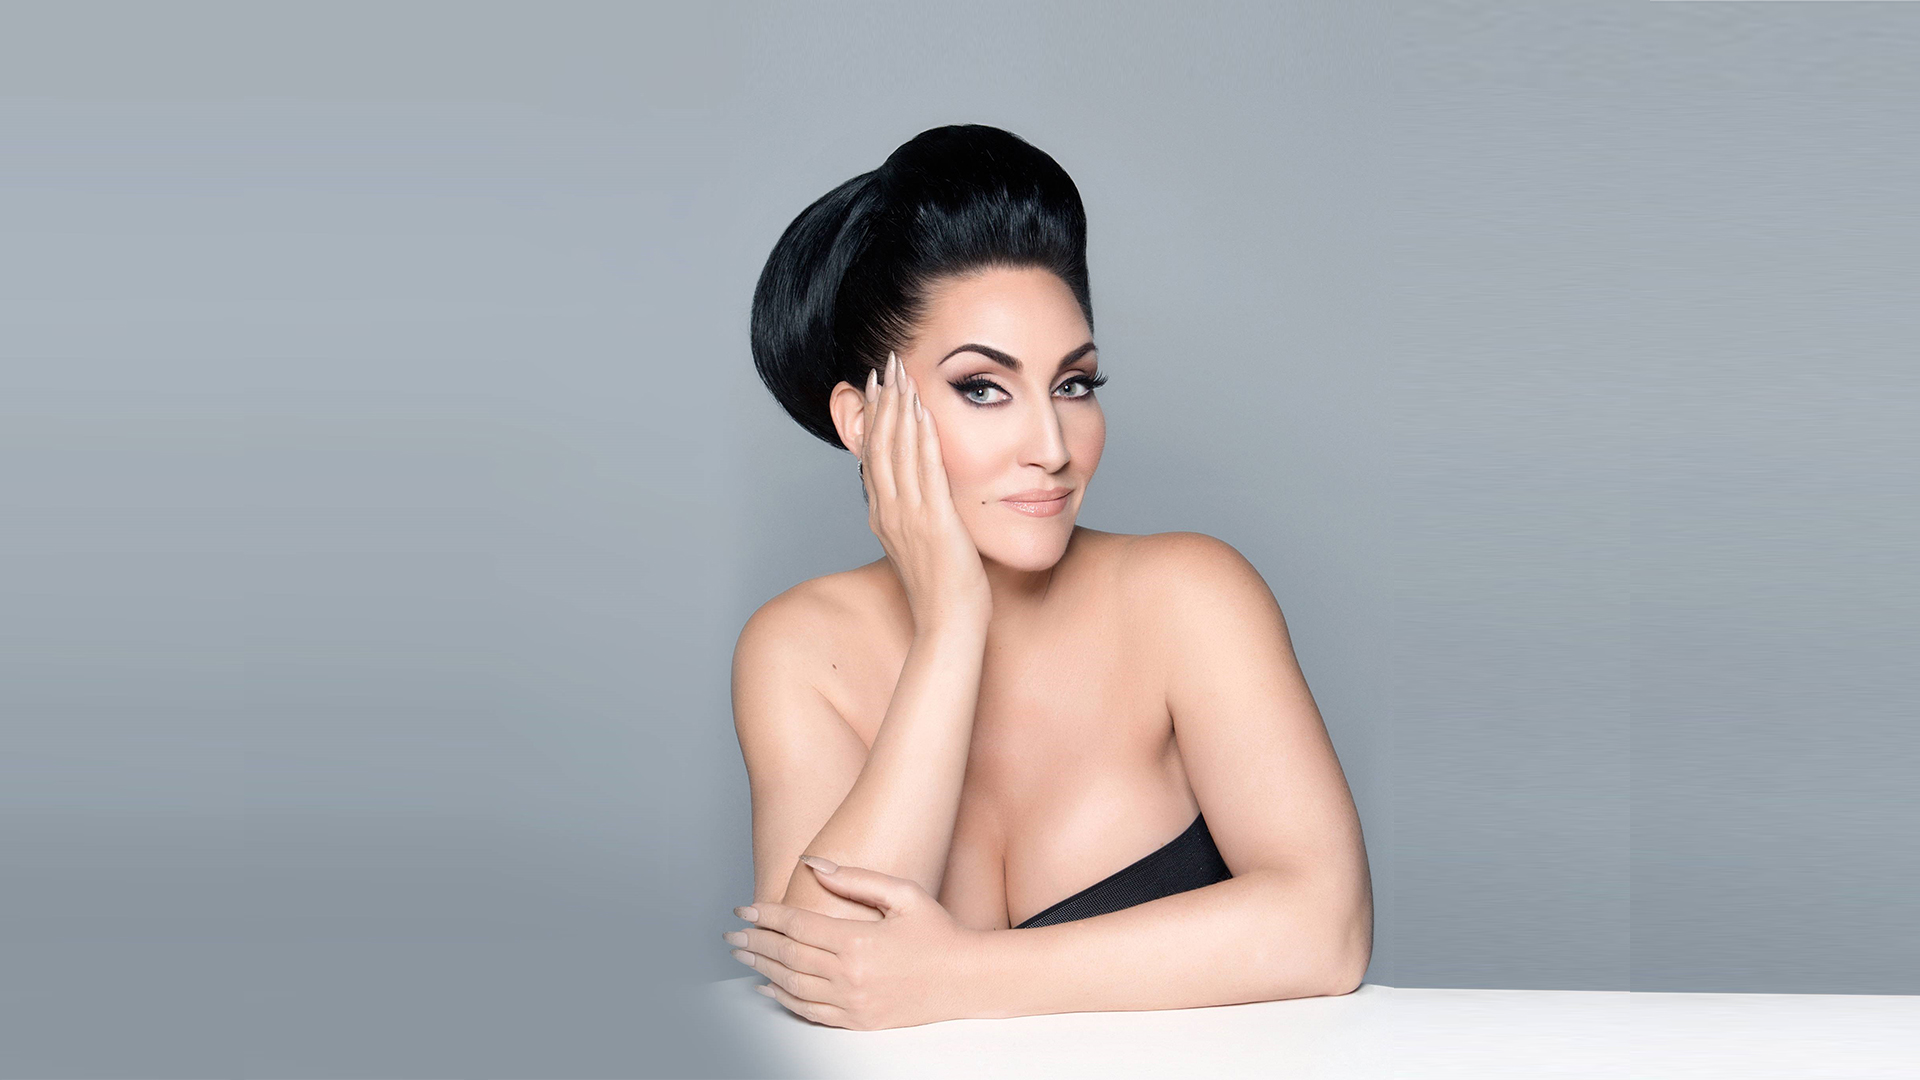 Michelle Visage: Get Off Your Ass Image